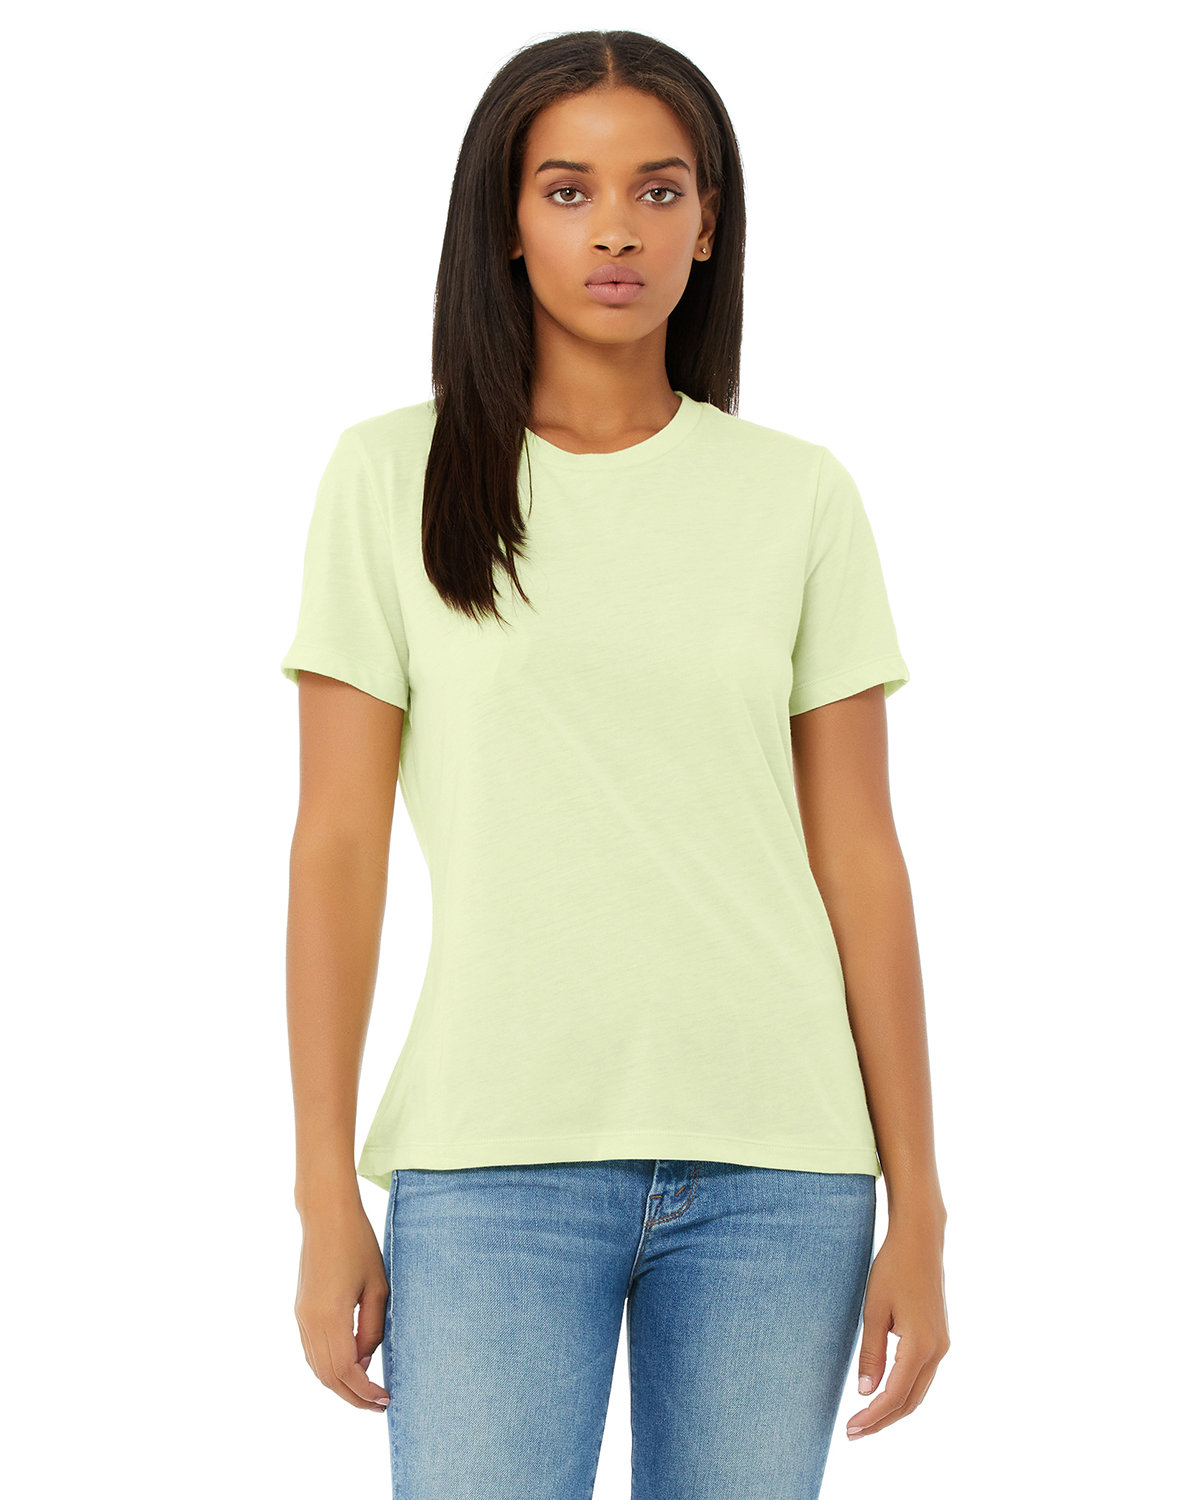 Bella + Canvas Ladies' Relaxed Triblend T-Shirt SPRNG GRN TRBLND